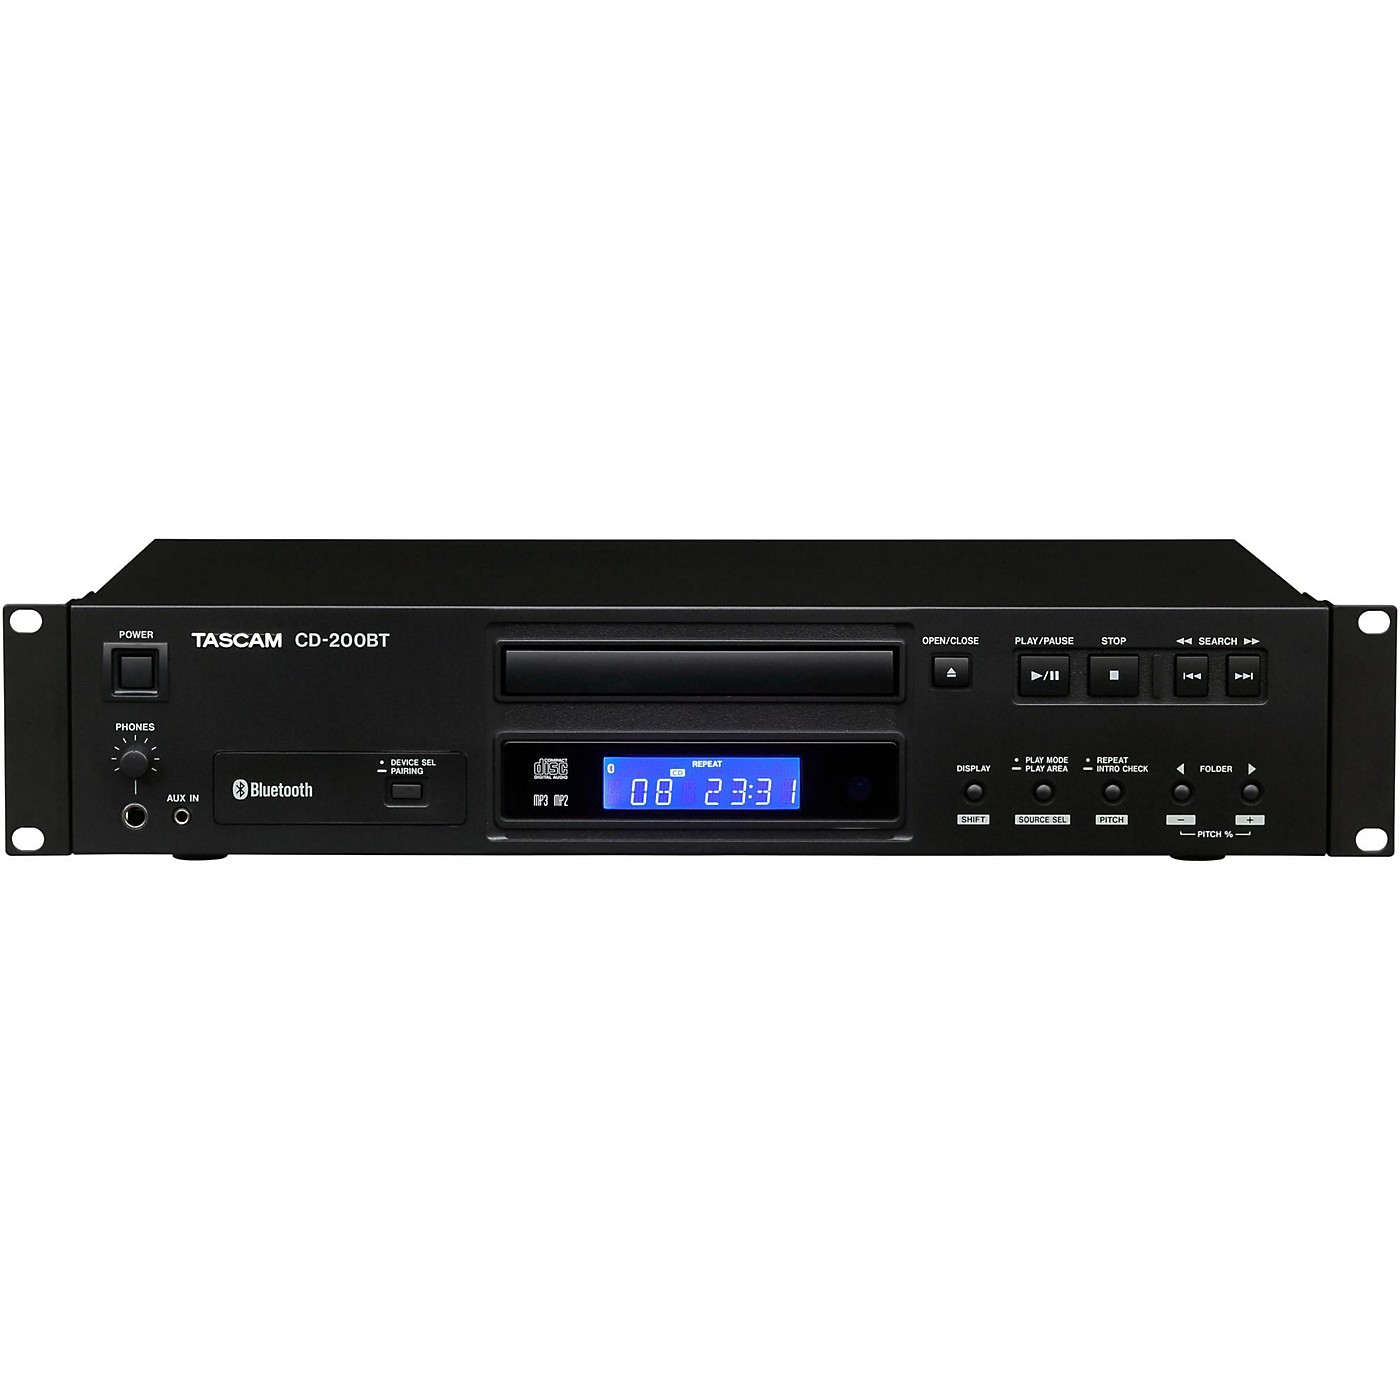 TASCAM CD-200BT Professional CD Player With Bluetooth Receiver thumbnail